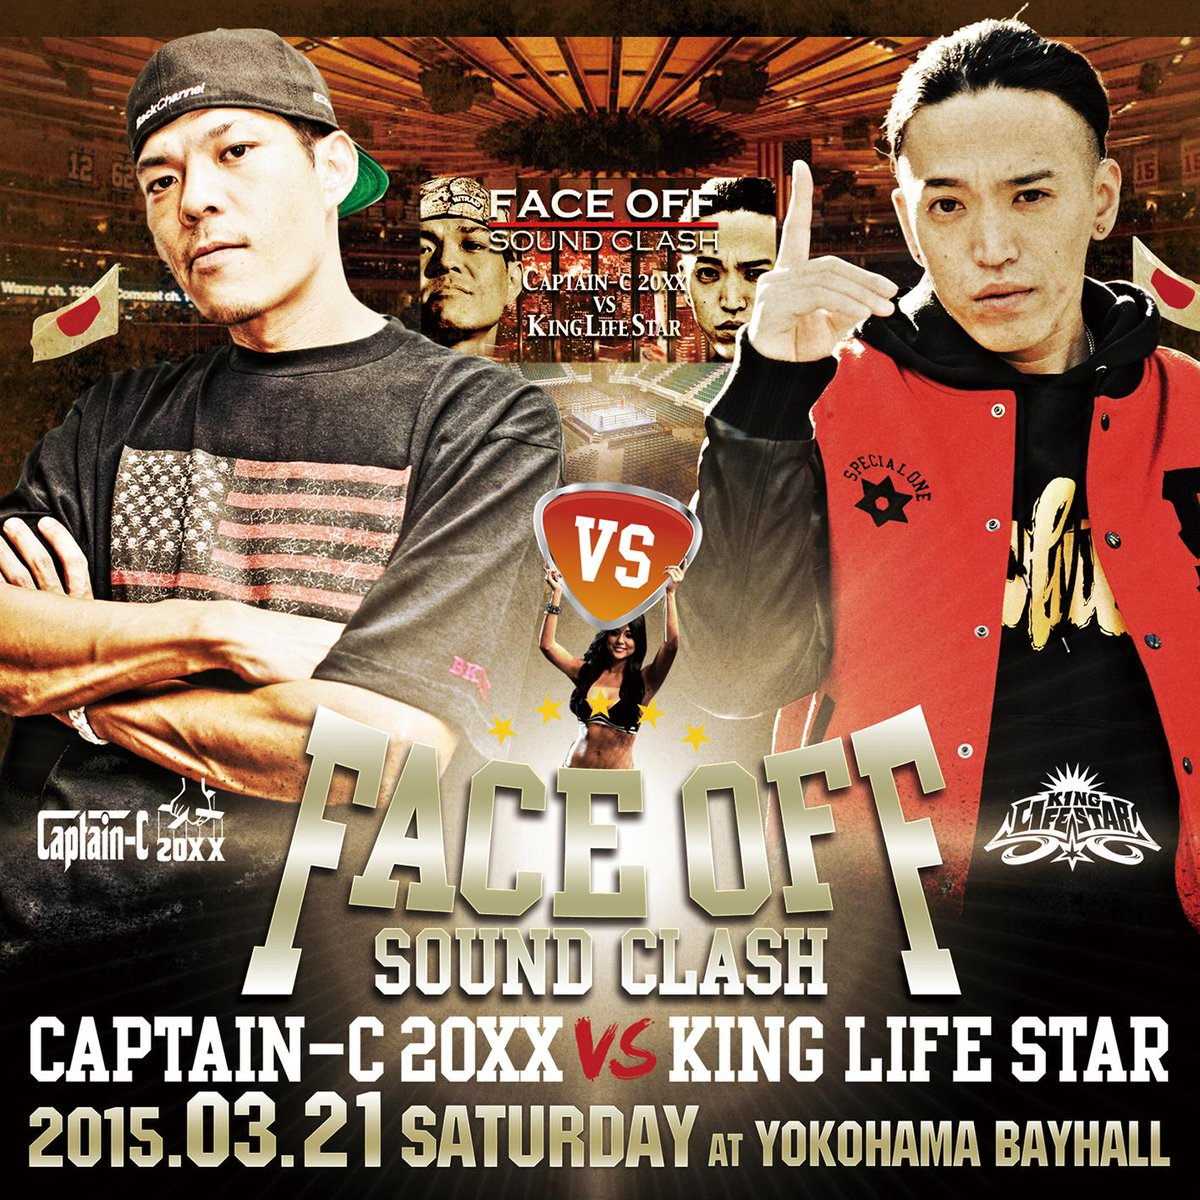 FACE OFF Sound Clash 3rd, 4TH ROUND ダウンロードのリンクはココから どうぞ!!  http://t.co/haRYsJyN5R http://t.co/ddrLr24lxc